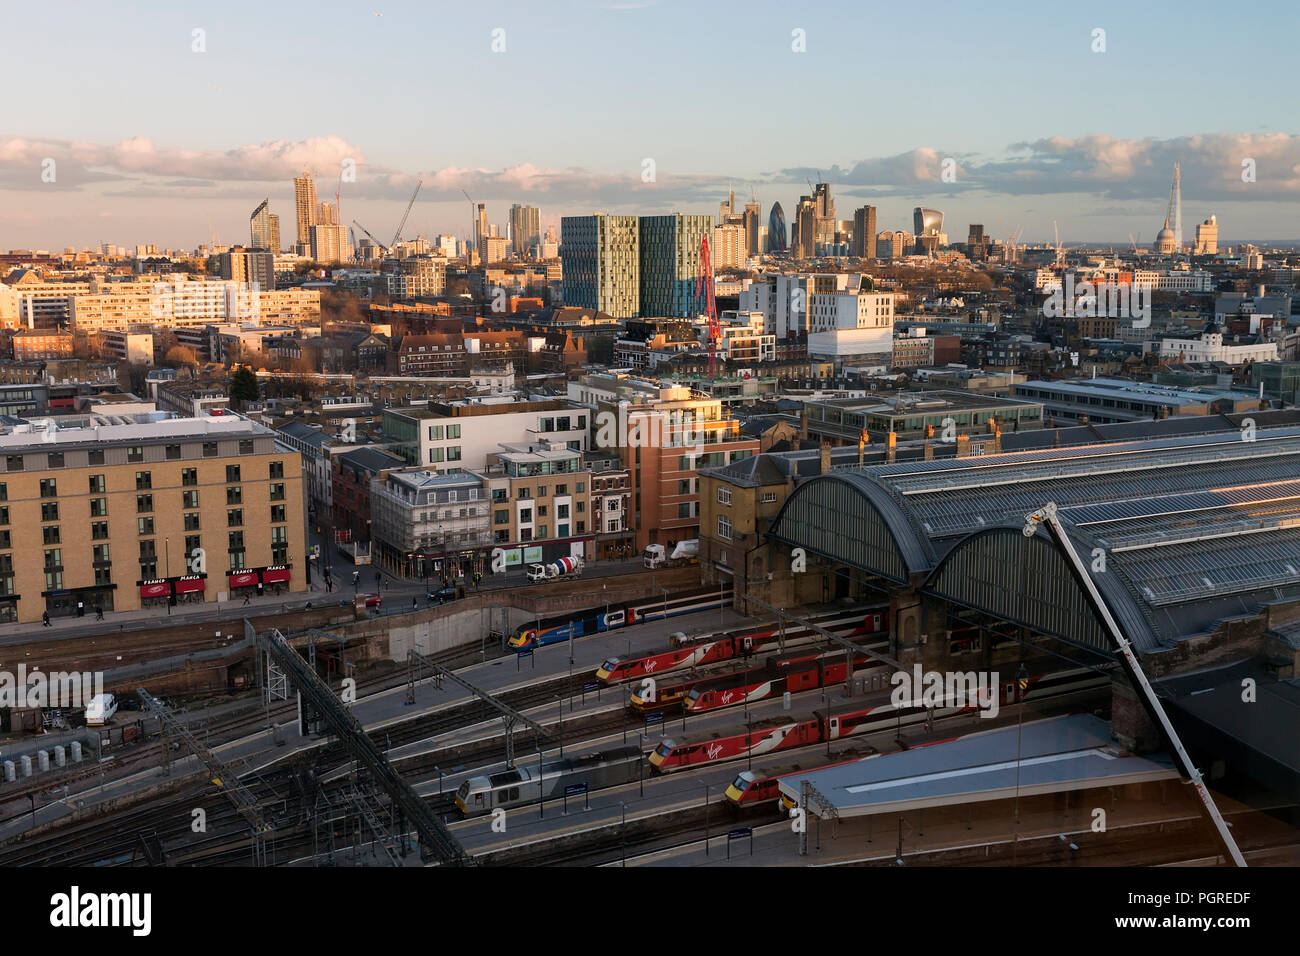 LONDON, UK - MARCH 7, 2018 : High, wide, daytime view of  London's skyline, with King's Cross Station in the foreground and the city landmarks in the  - Stock Image